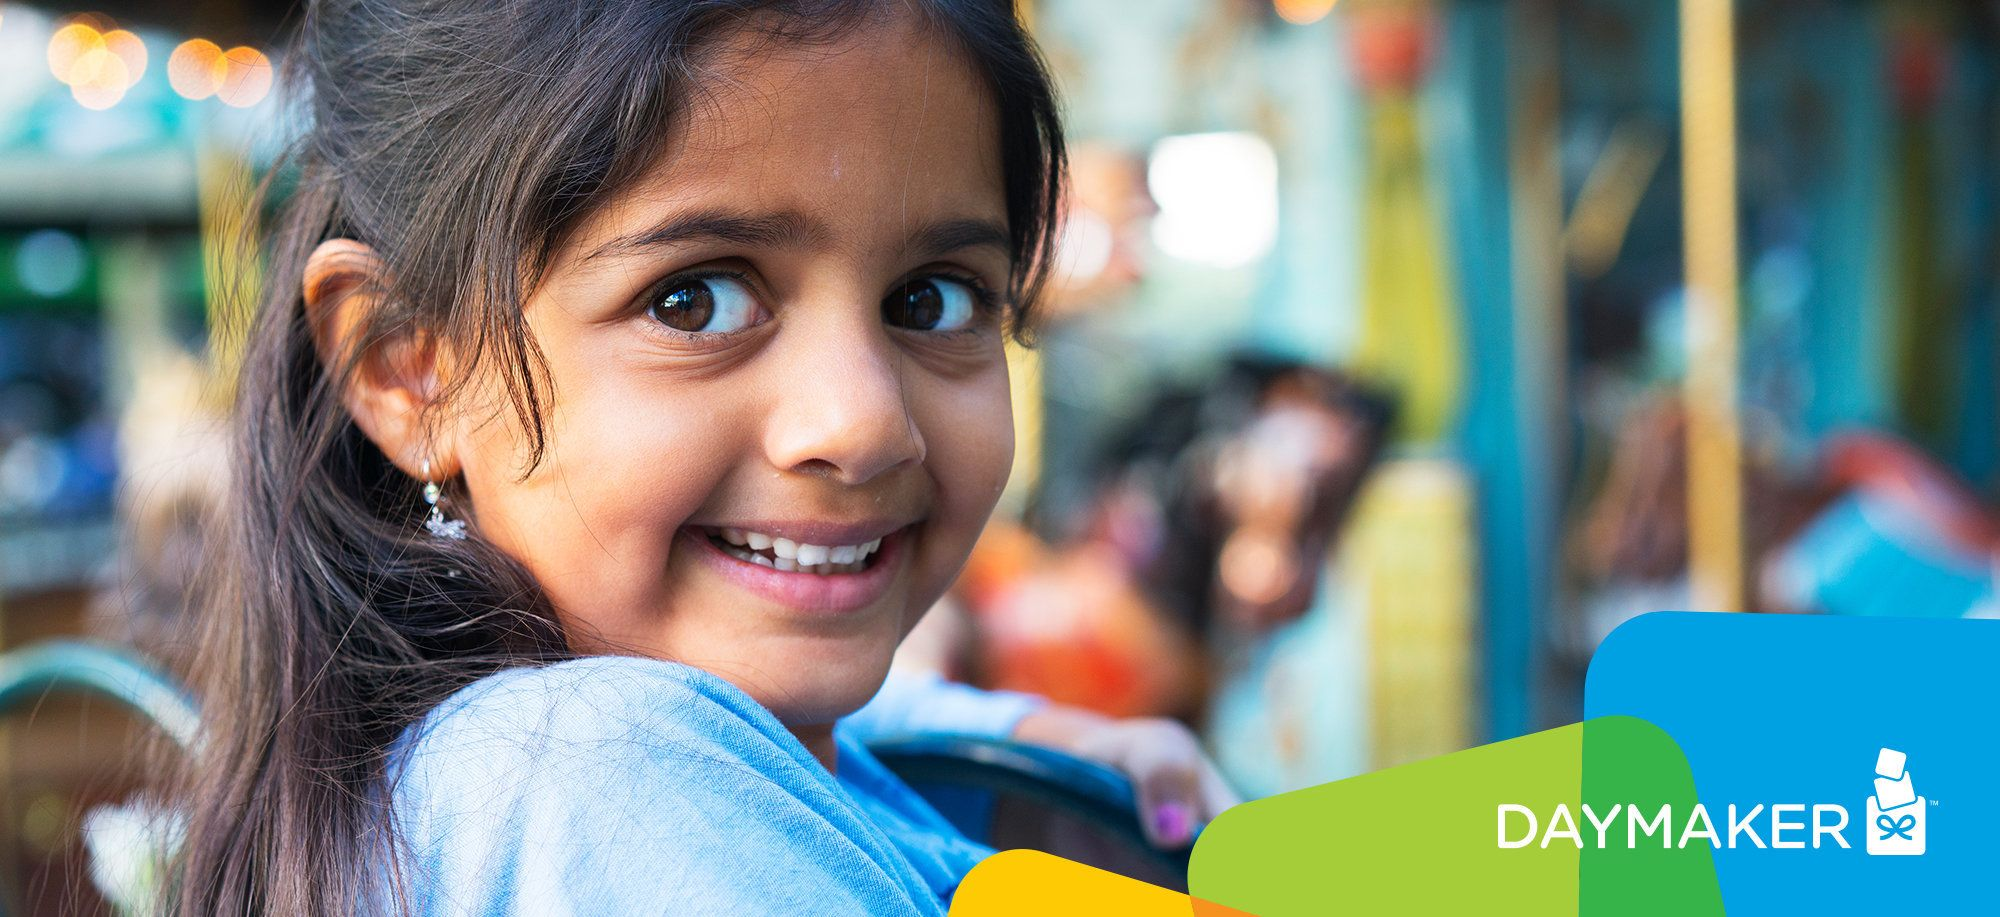 Daymaker is a kid-to-kid giving platform that helps childrenembrace selfless values.